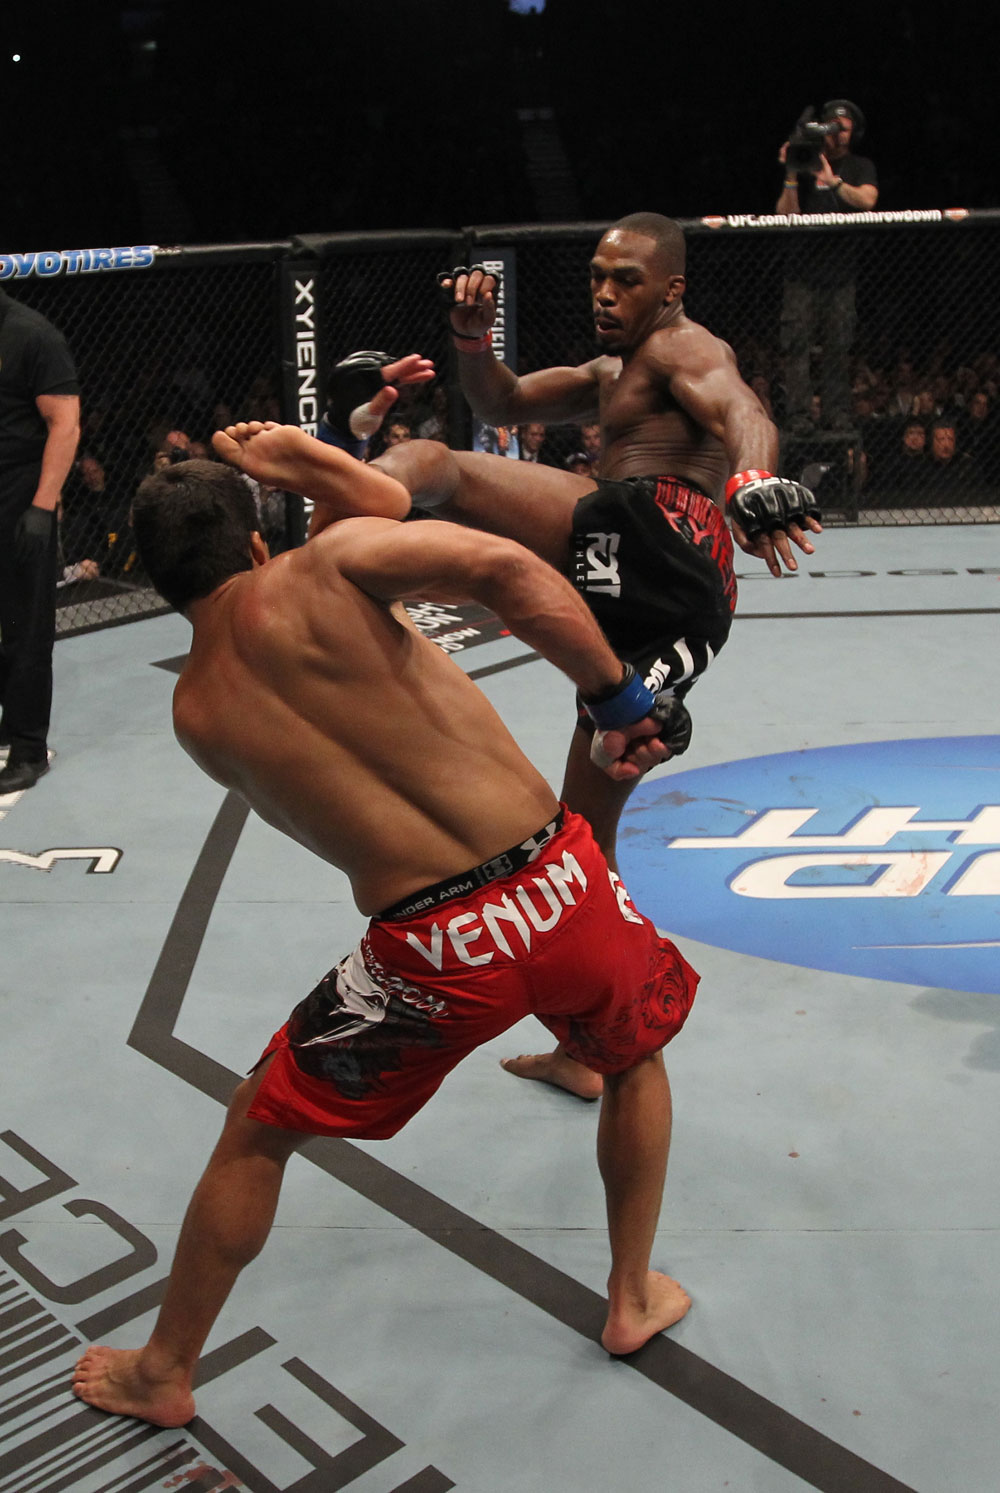 TORONTO, ON - DECEMBER 10:  (R-L) Jon &quot;Bones&quot; Jones kicks Lyoto Machida during the UFC 140 event at Air Canada Centre on December 10, 2011 in Toronto, Ontario, Canada.  (Photo by Nick Laham/Zuffa LLC/Zuffa LLC via Getty Images)